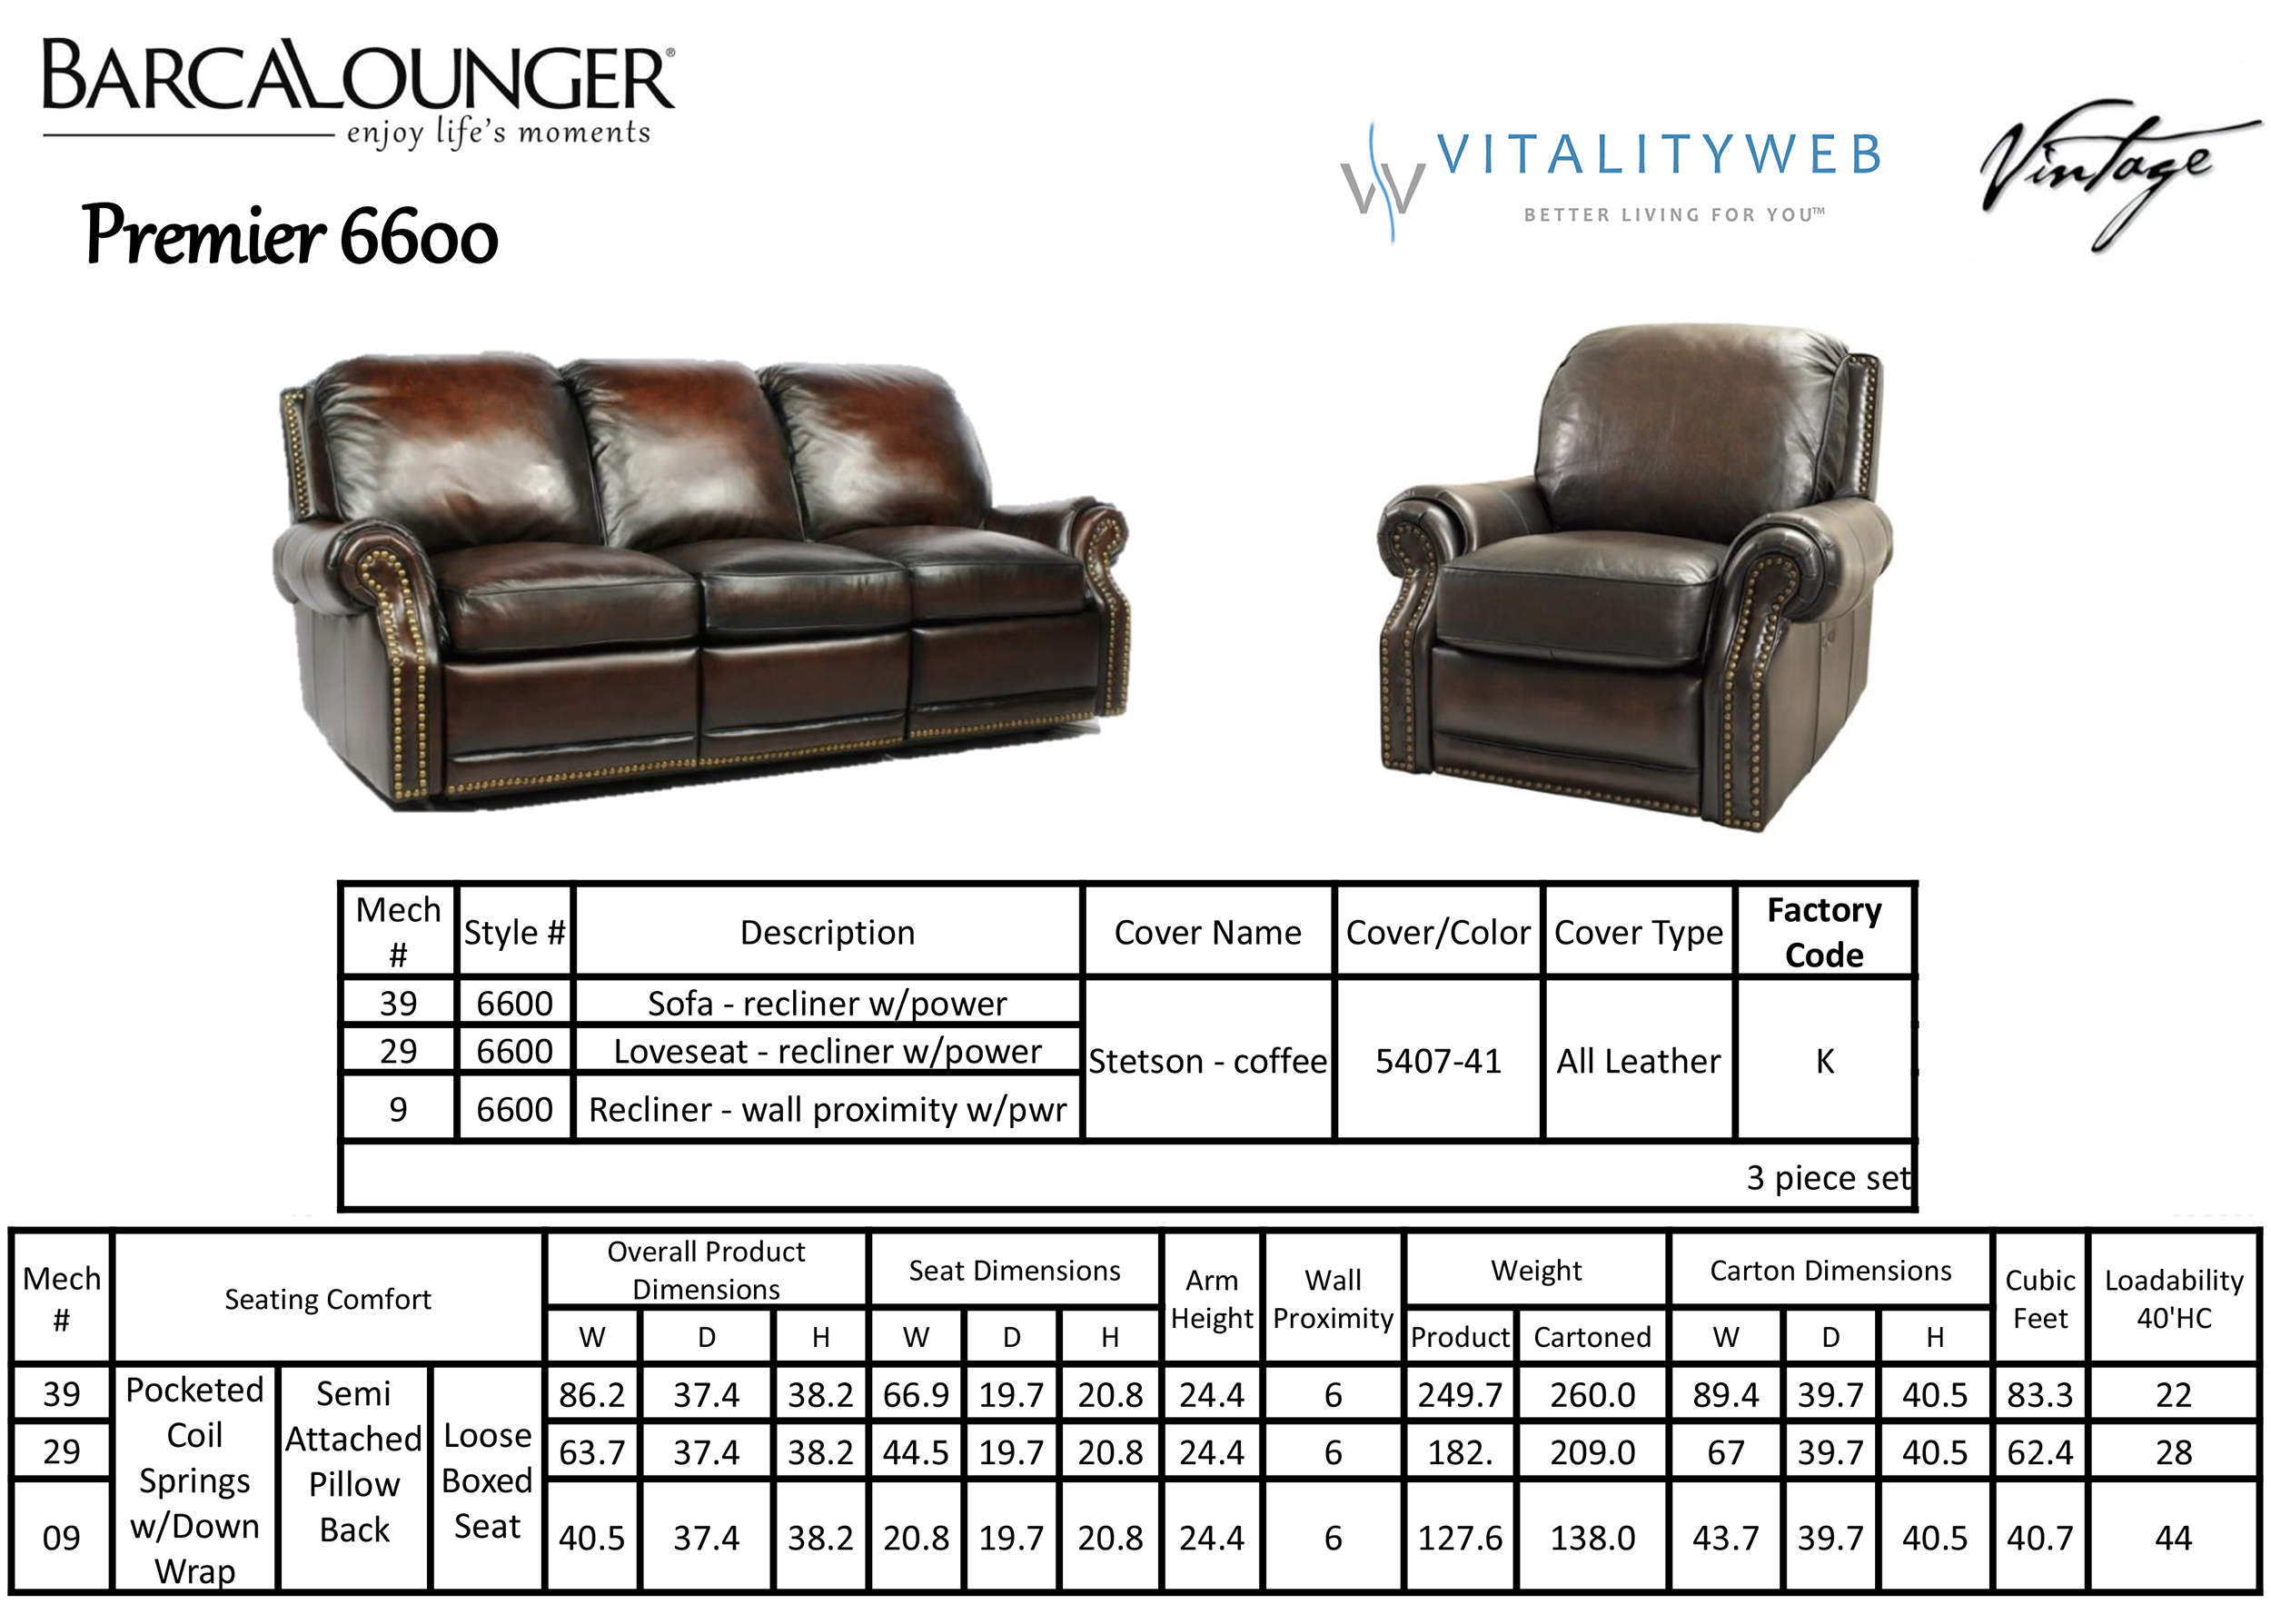 Barcalounger Premier Recliner and Sofa Dimensions  sc 1 st  Vitalityweb.com & Barcalounger Premier II Leather Recliner Chair - Leather Recliner ... islam-shia.org